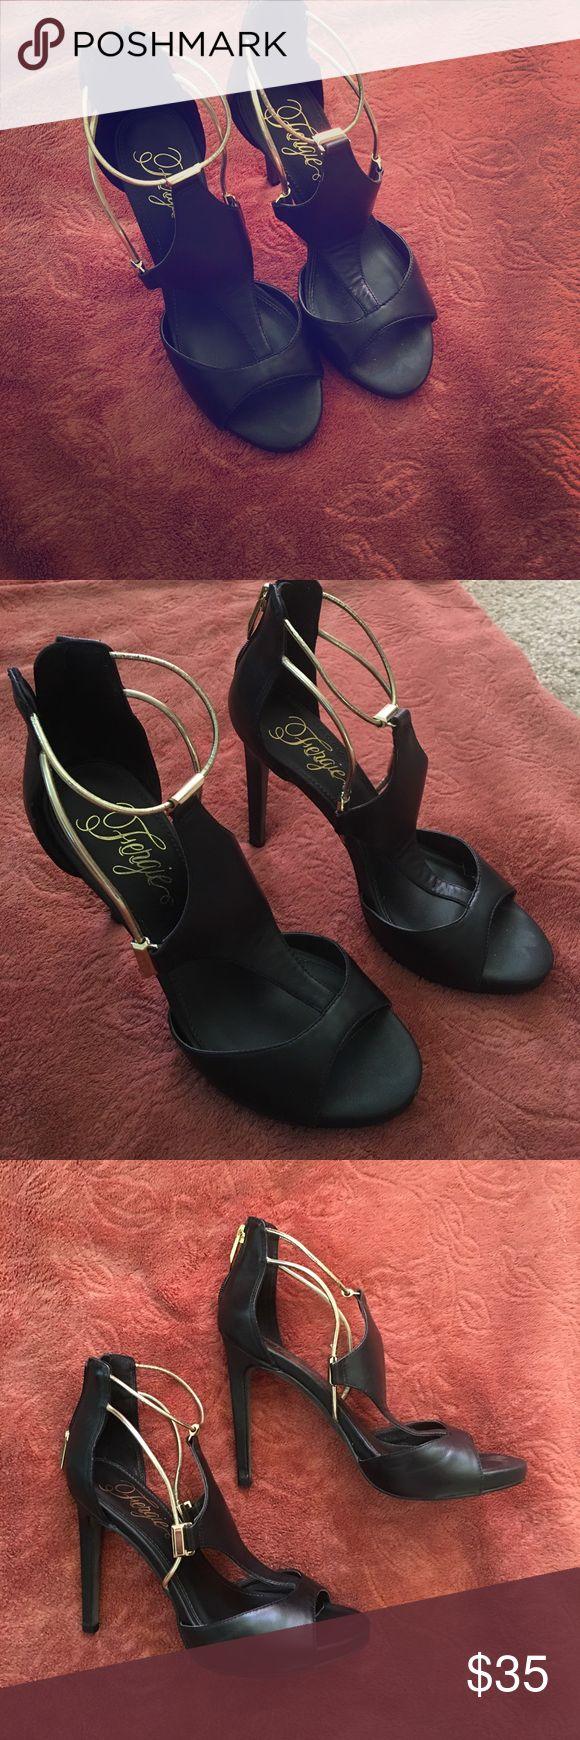 Black leather and gold Fergie heels size 7 Genuine black leather size 7 heels with lightly cushioned soles and gold straps with metal detailing. In good used condition, only worn once. Super comfy and stylish Fergie Shoes Heels